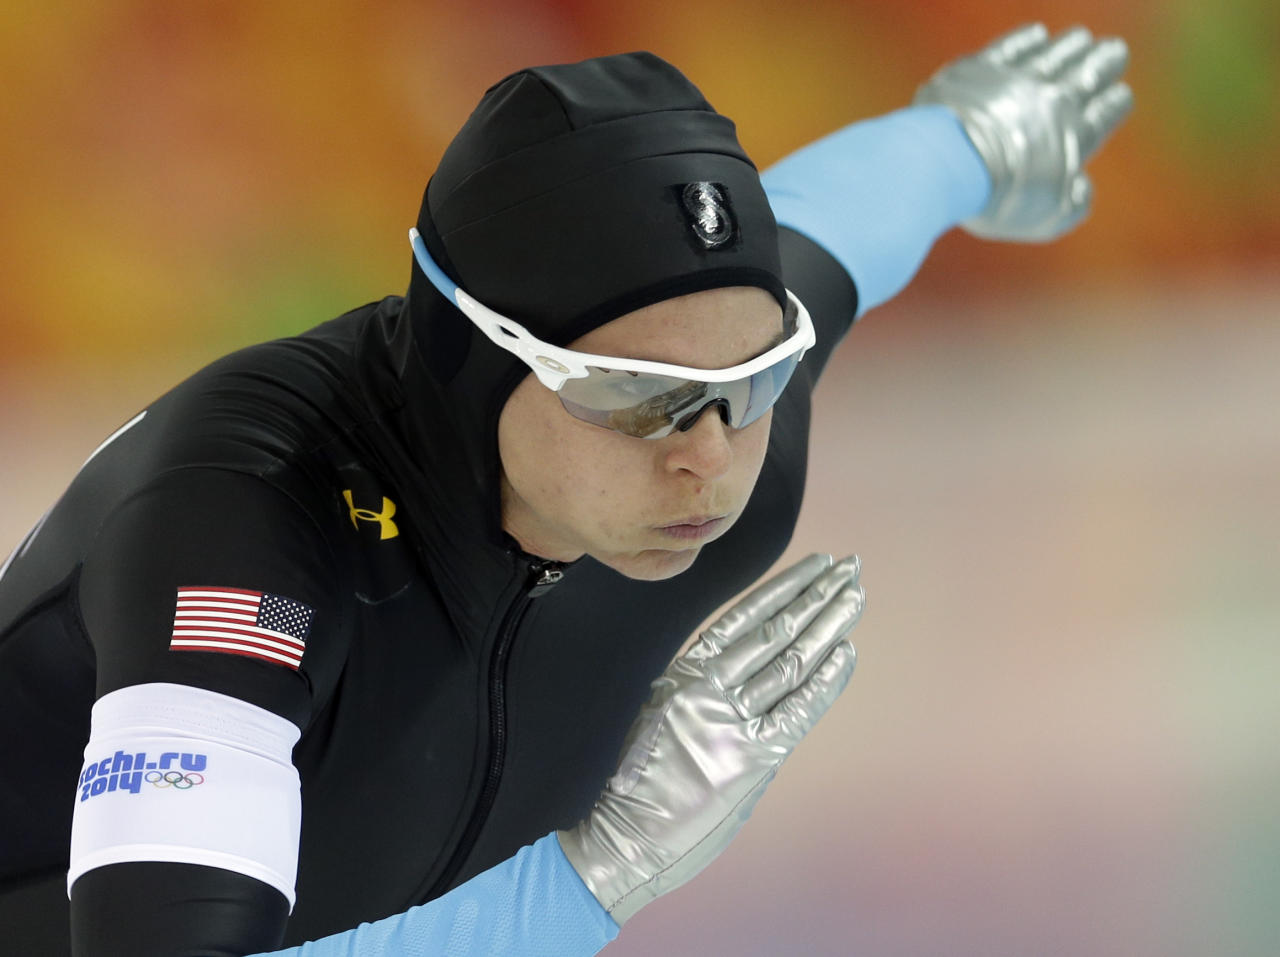 Brittany Bowe of the U.S. takes the start during the women's 1,500-meter speedskating race at the Adler Arena Skating Center during the 2014 Winter Olympics in Sochi, Russia, Sunday, Feb. 16, 2014. (AP Photo/Patrick Semansky)